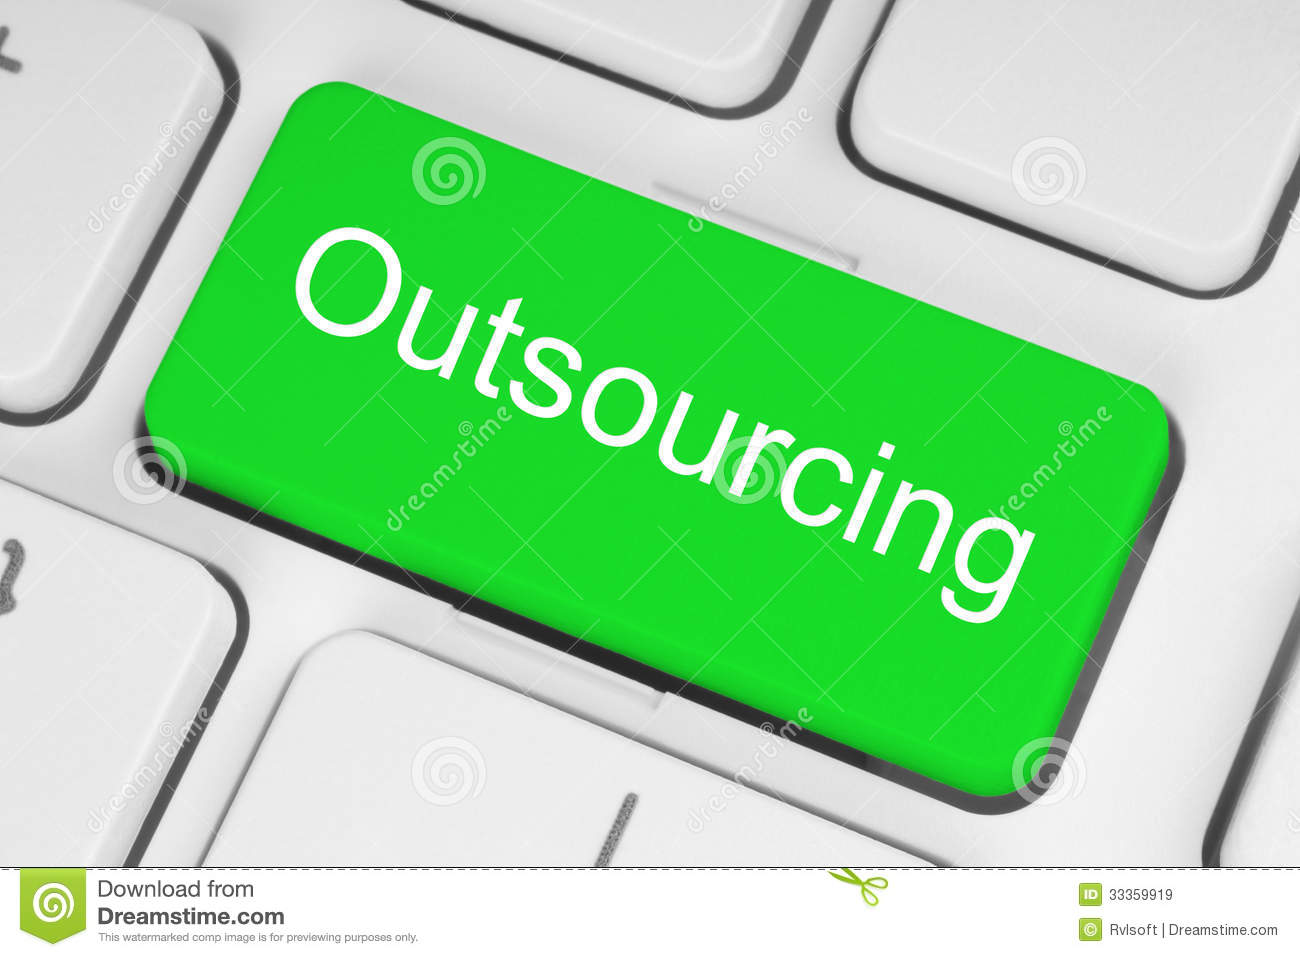 Information Technology Outsourcing - PowerPoint PPT Presentation